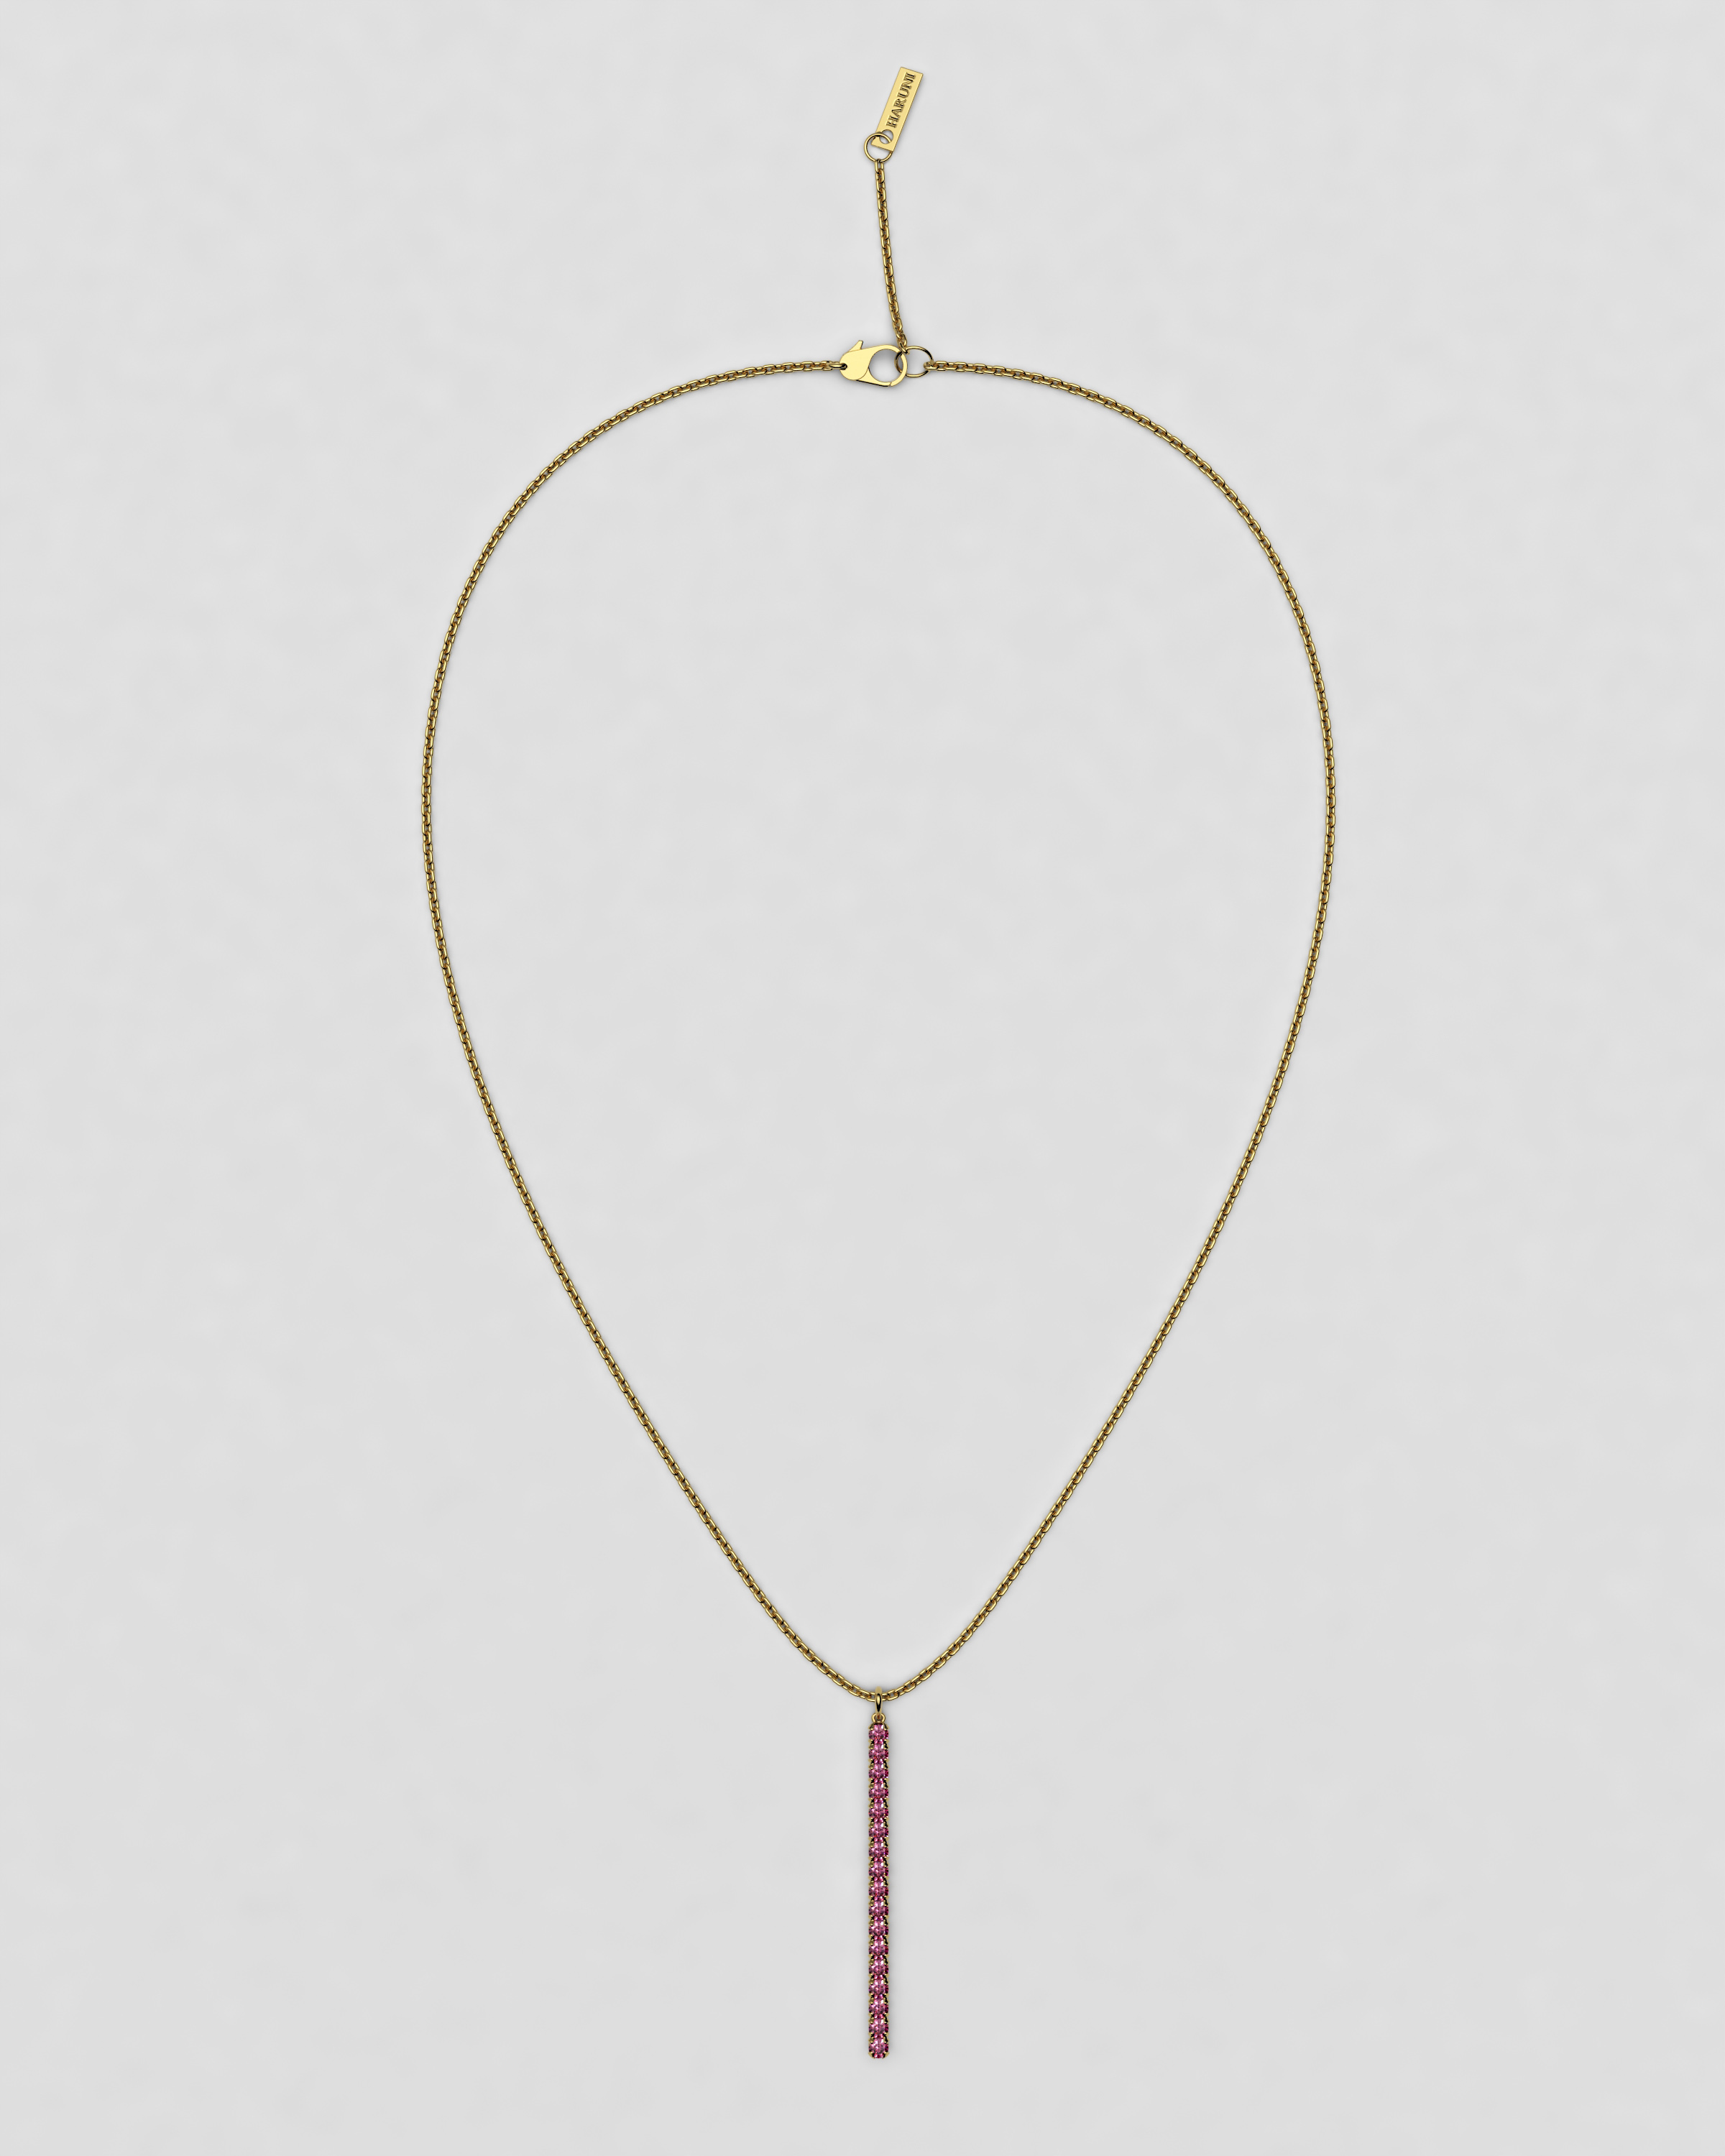 blossom necklace and long pendant  - pink sapphire and 18k yellow gold